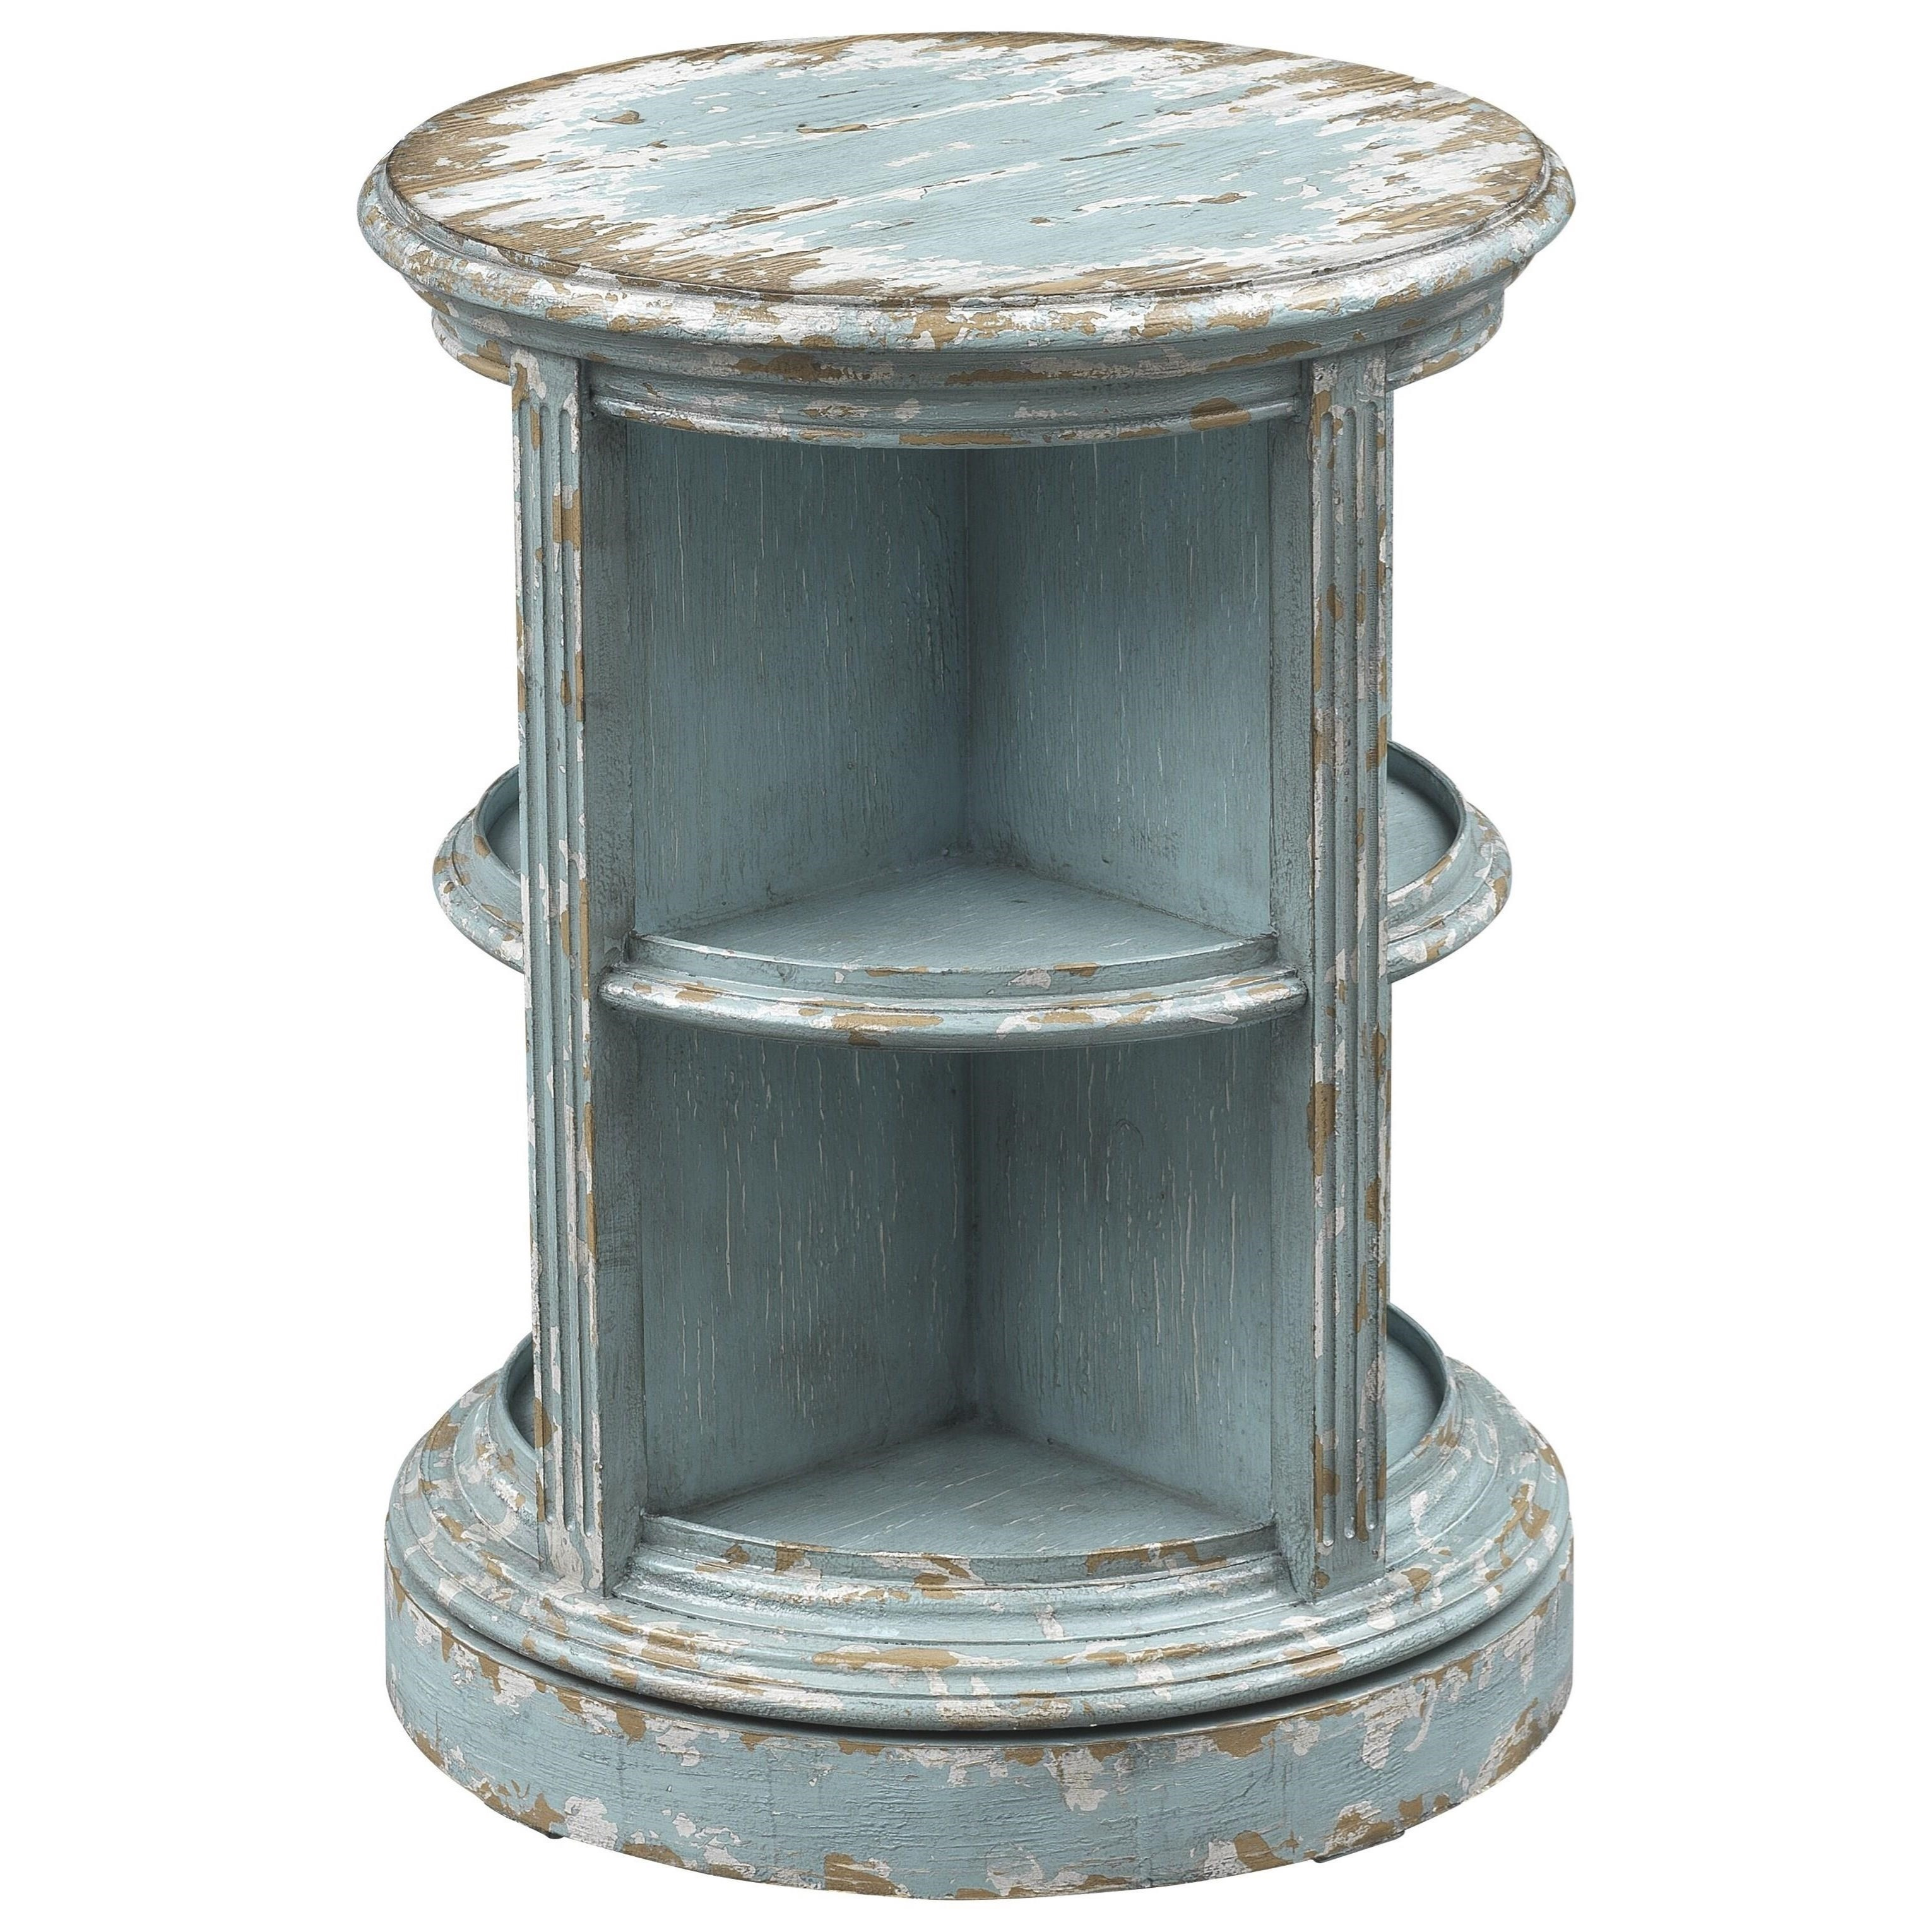 4020 Swivel Accent Table by Coast to Coast Imports at Bullard Furniture